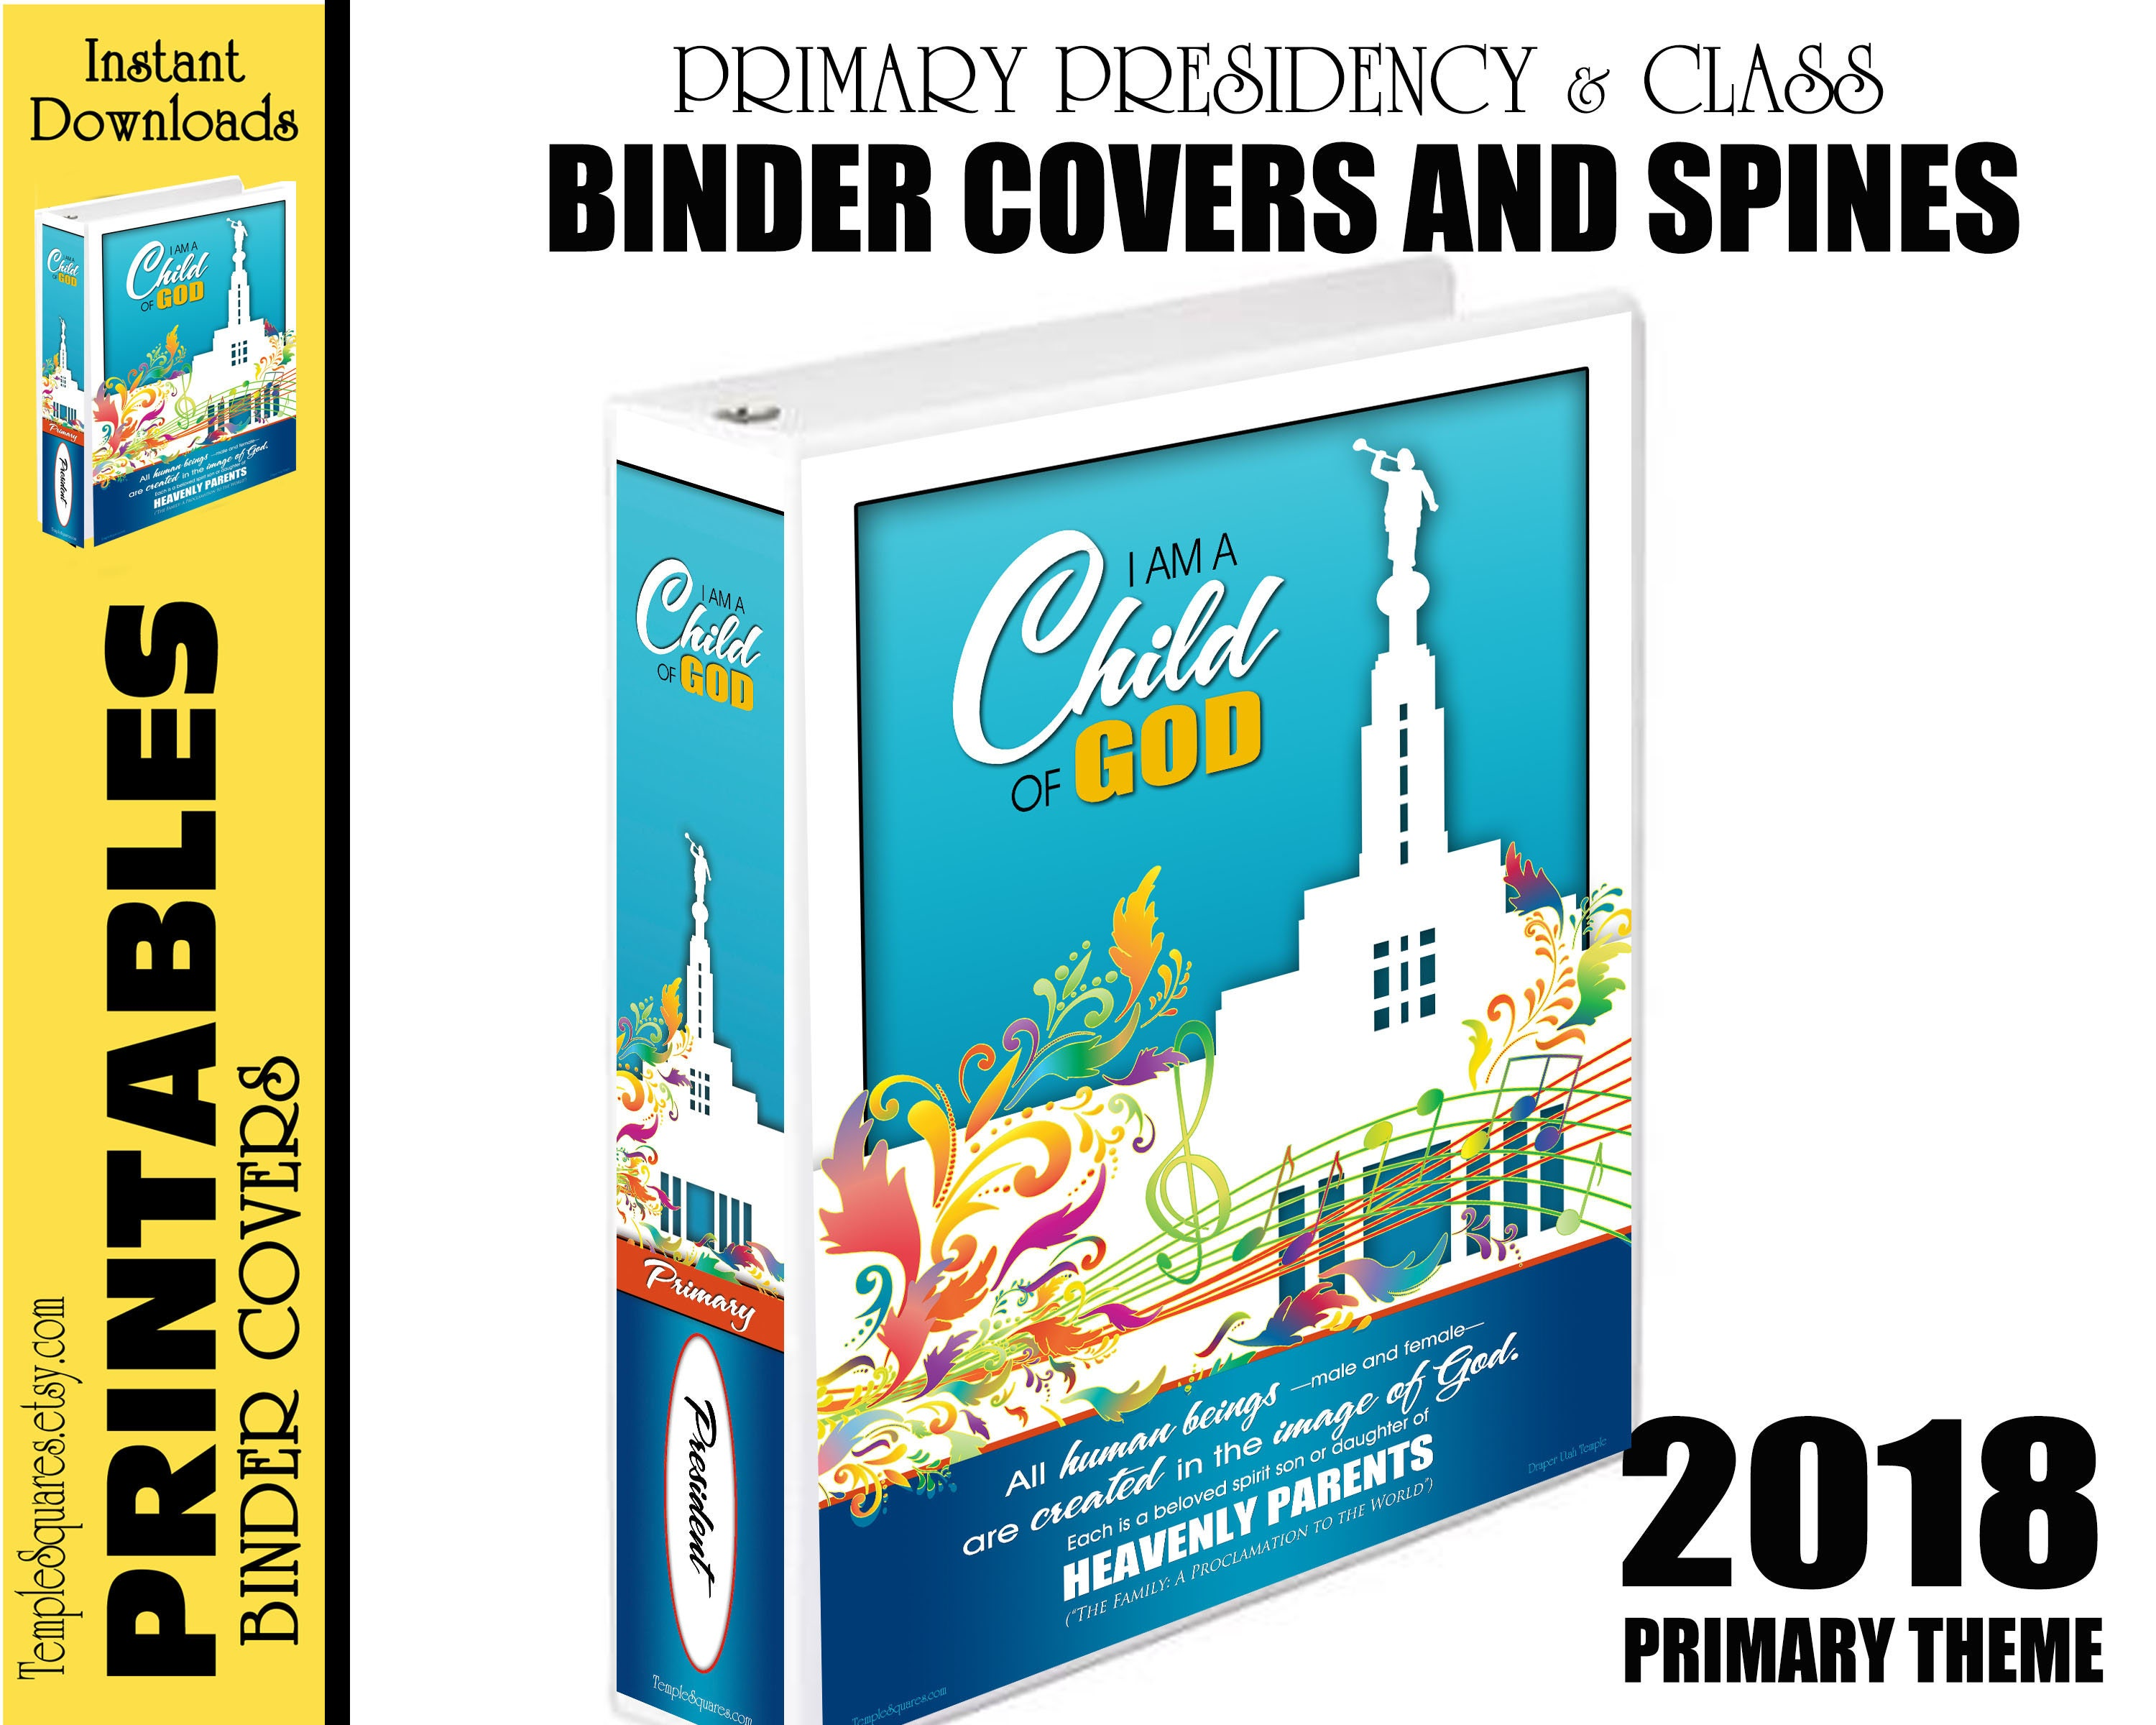 2018 Primary Printable Binder Covers for Presidency and Teachers ...